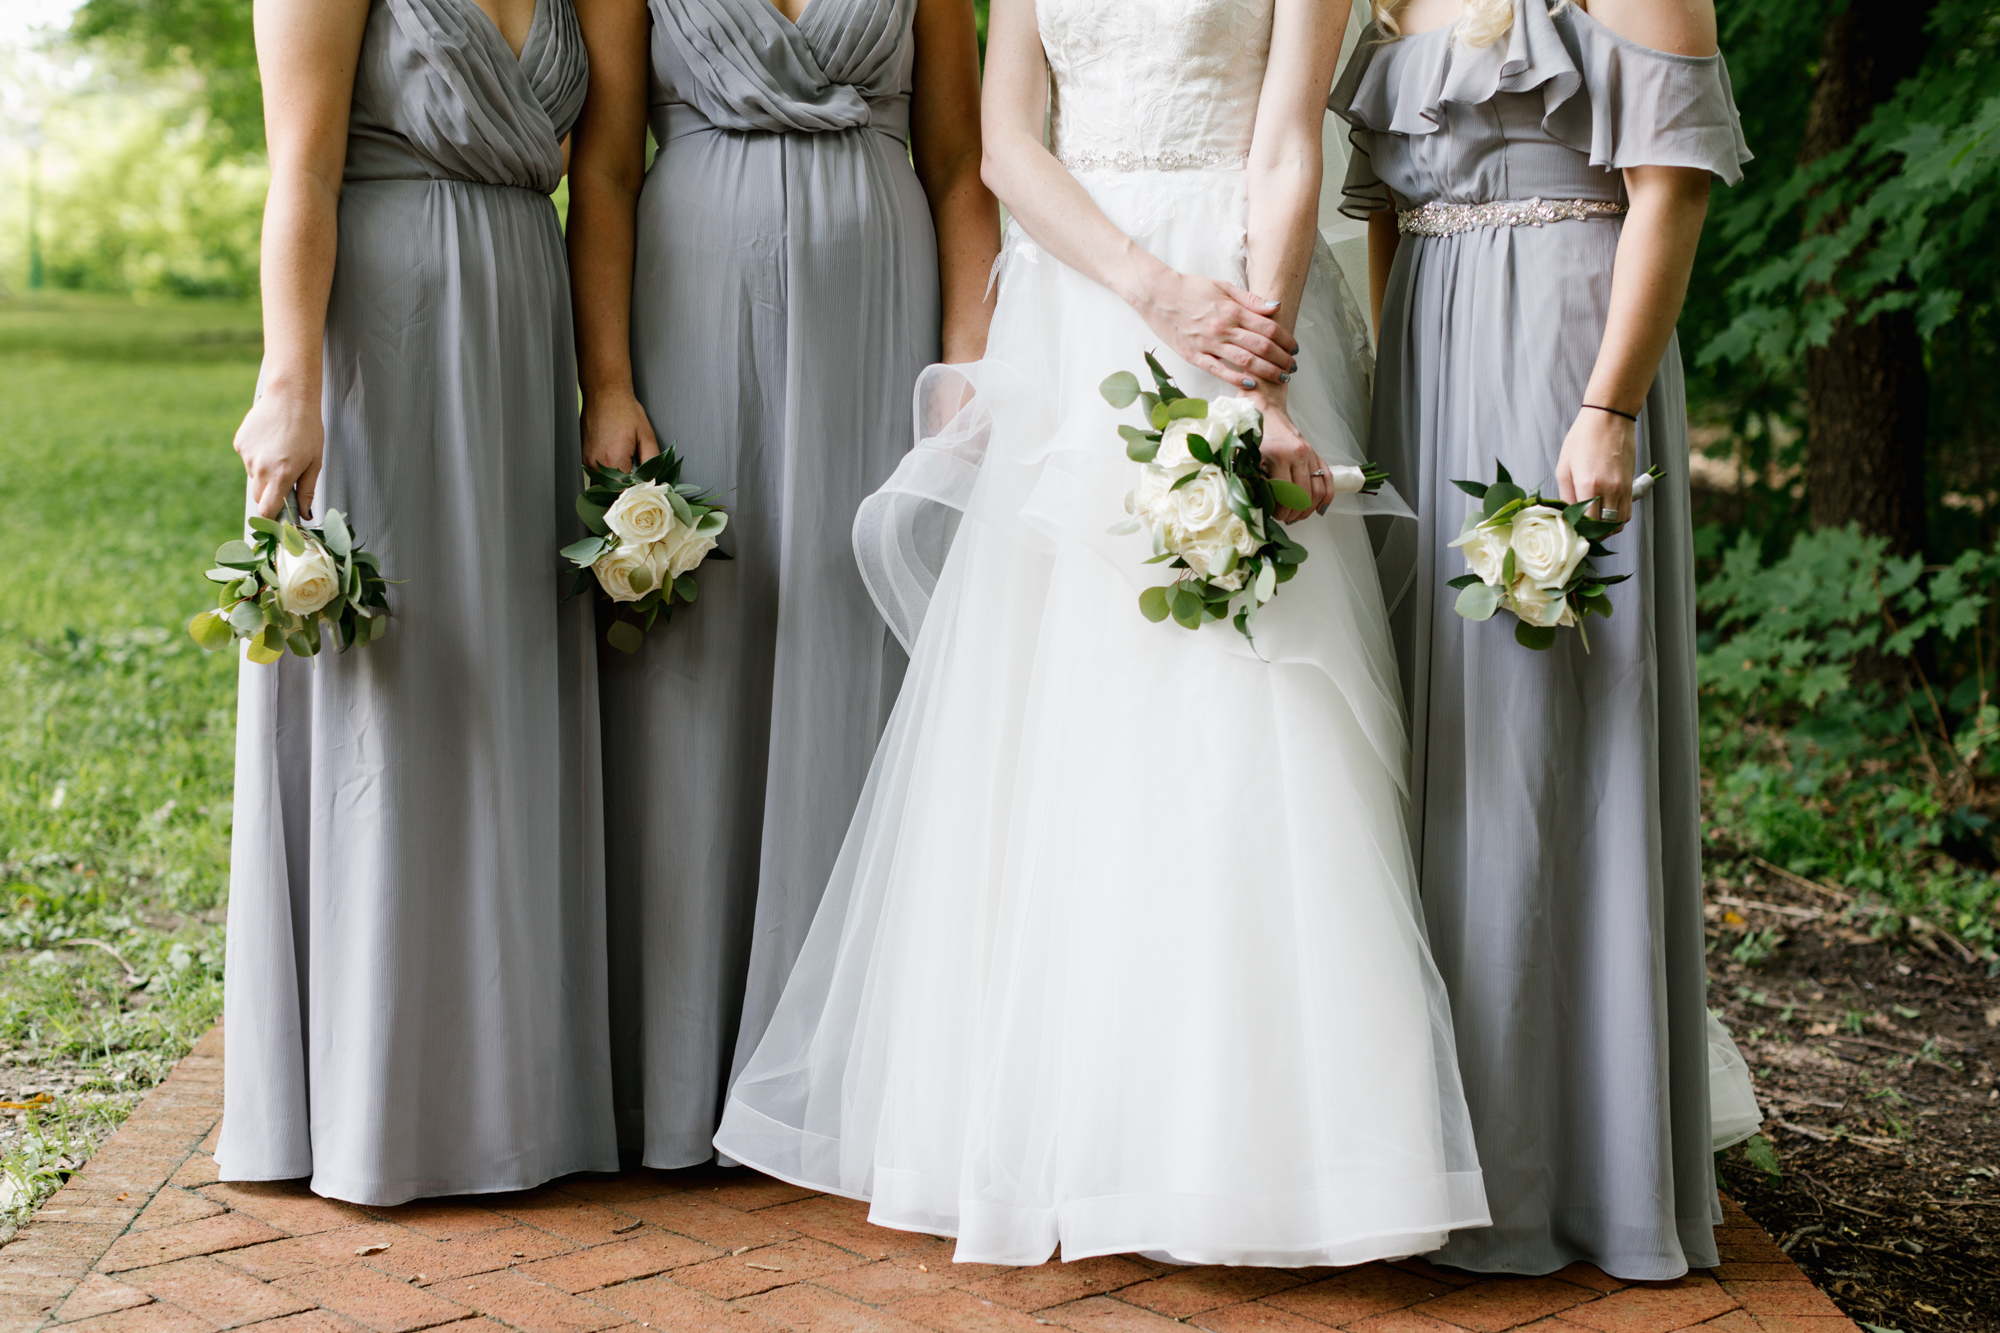 Bridesmaids photography before an intimate wedding at the Indiana Memorial Union at Indiana University in Bloomington, Indiana.